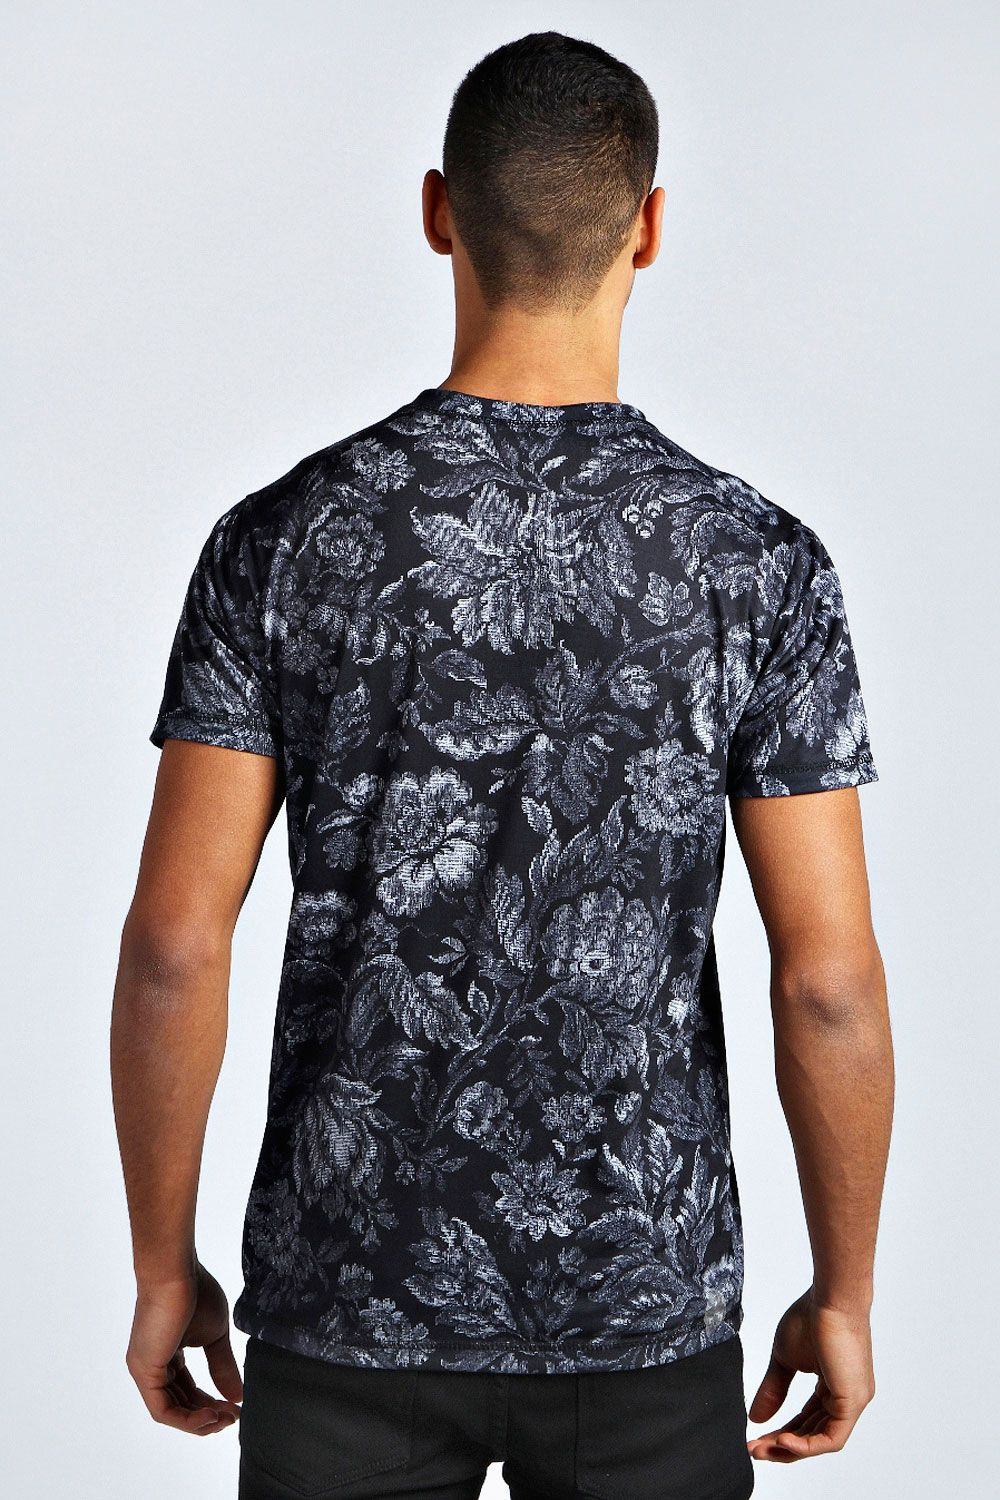 All Over Floral Printed T Shirt at boohoo.com | T shirt ...